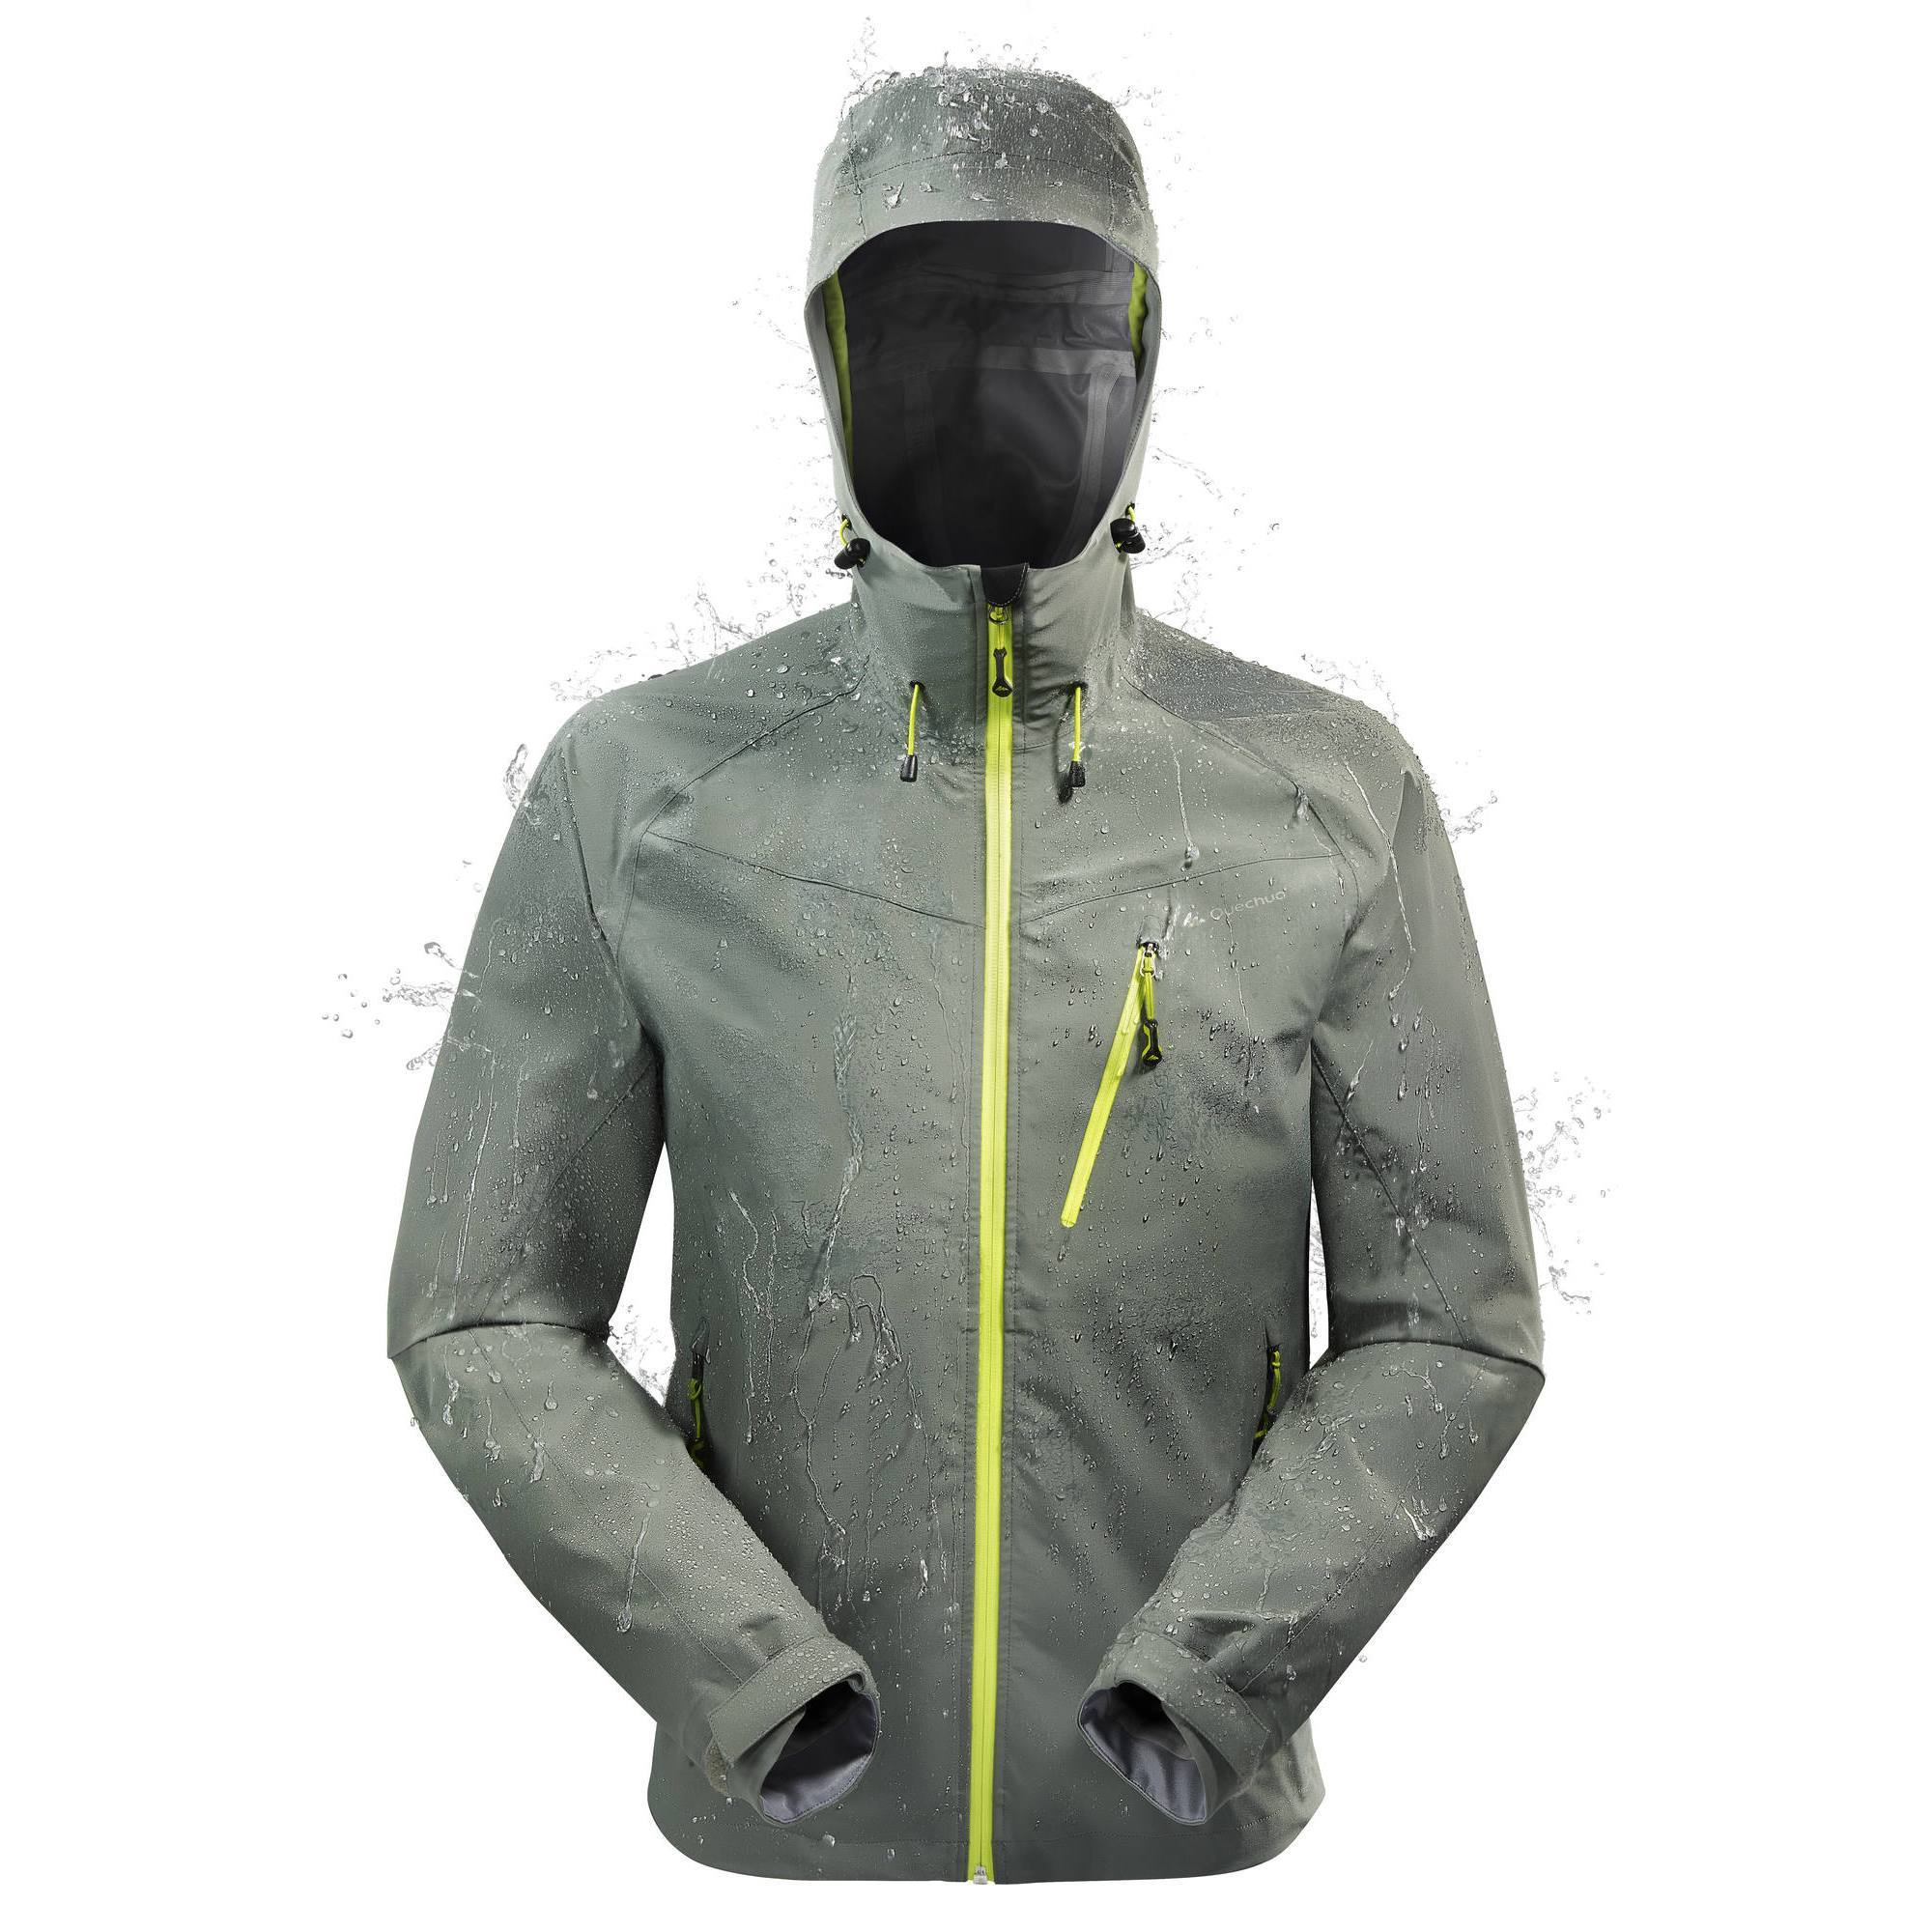 Jacket – Quechua Forclaz 400 Grey Jacket - This jacket is meant to be both waterproof and breathable, and I do hope so considering I am expecting to be battered by wind and rain right from the start. I am fairly lanky and normally I have to buy items like this oversized in the body so they fit in the arms but this jacket both fitted my body and arms well.